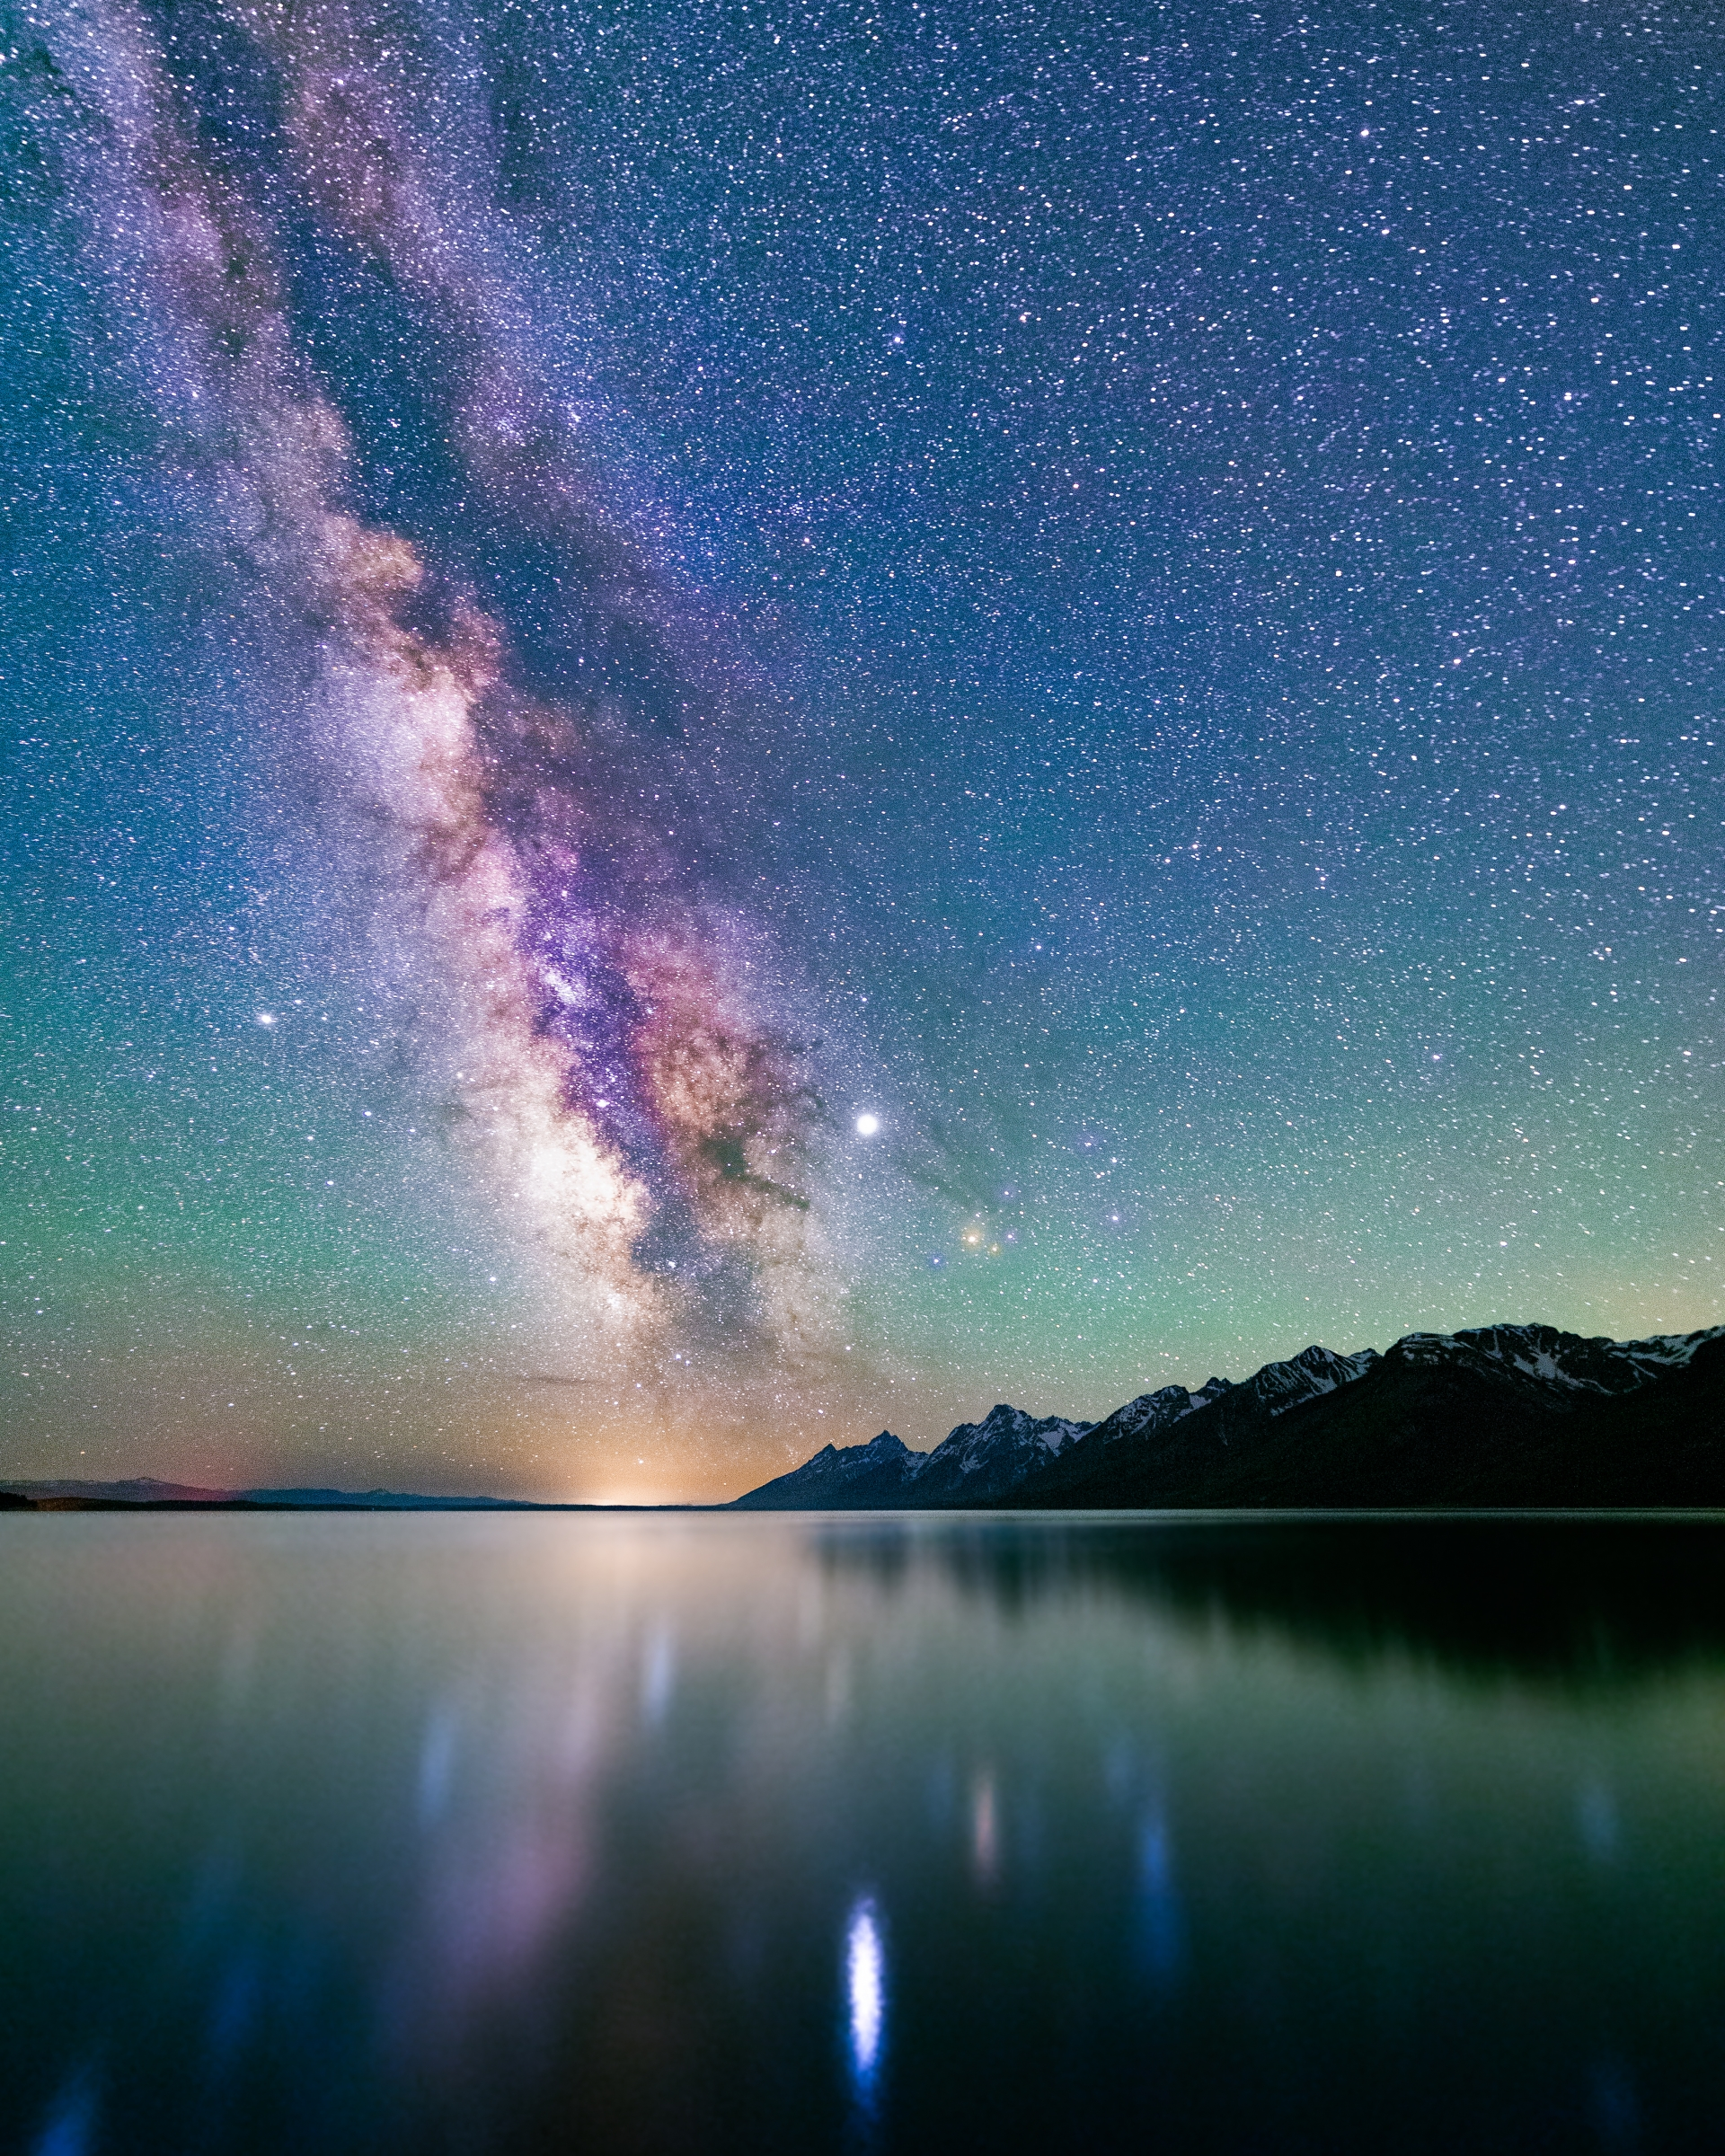 Starry skies over a lake in Grand Teton National Park